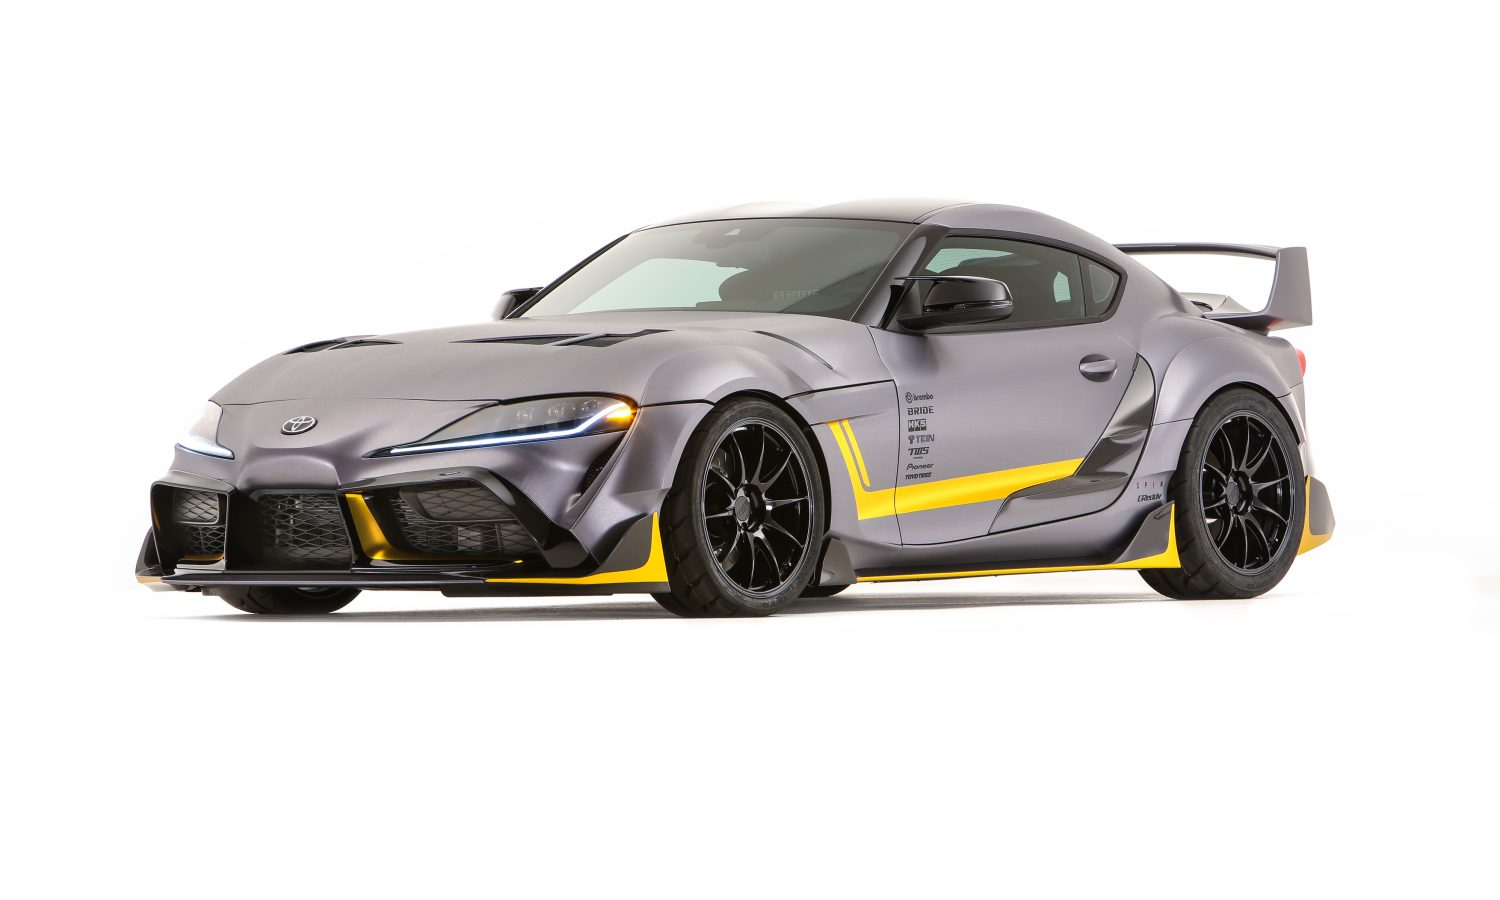 TCD Injects Vintage DNA Into Its GR Supra 3000GT Concept